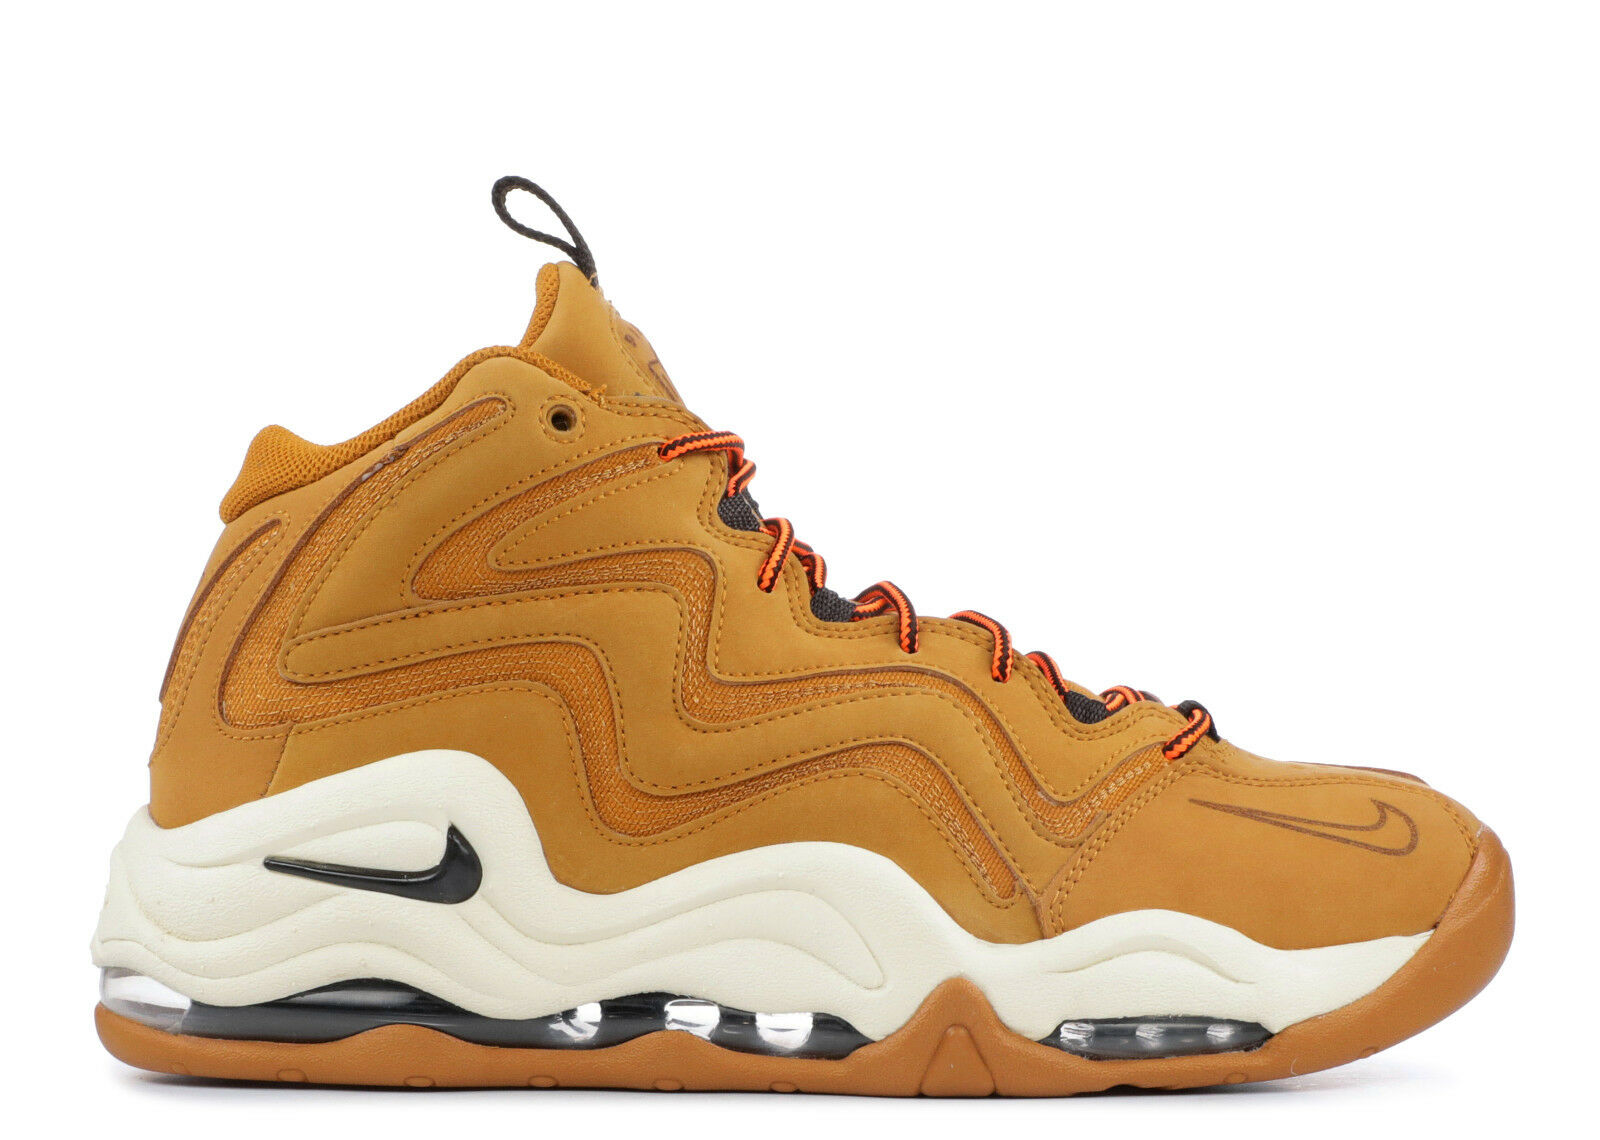 Nike Air Pippen Fuel 325001-700 Wheat Wheat Wheat Leather Basketball Men 6a3cf4